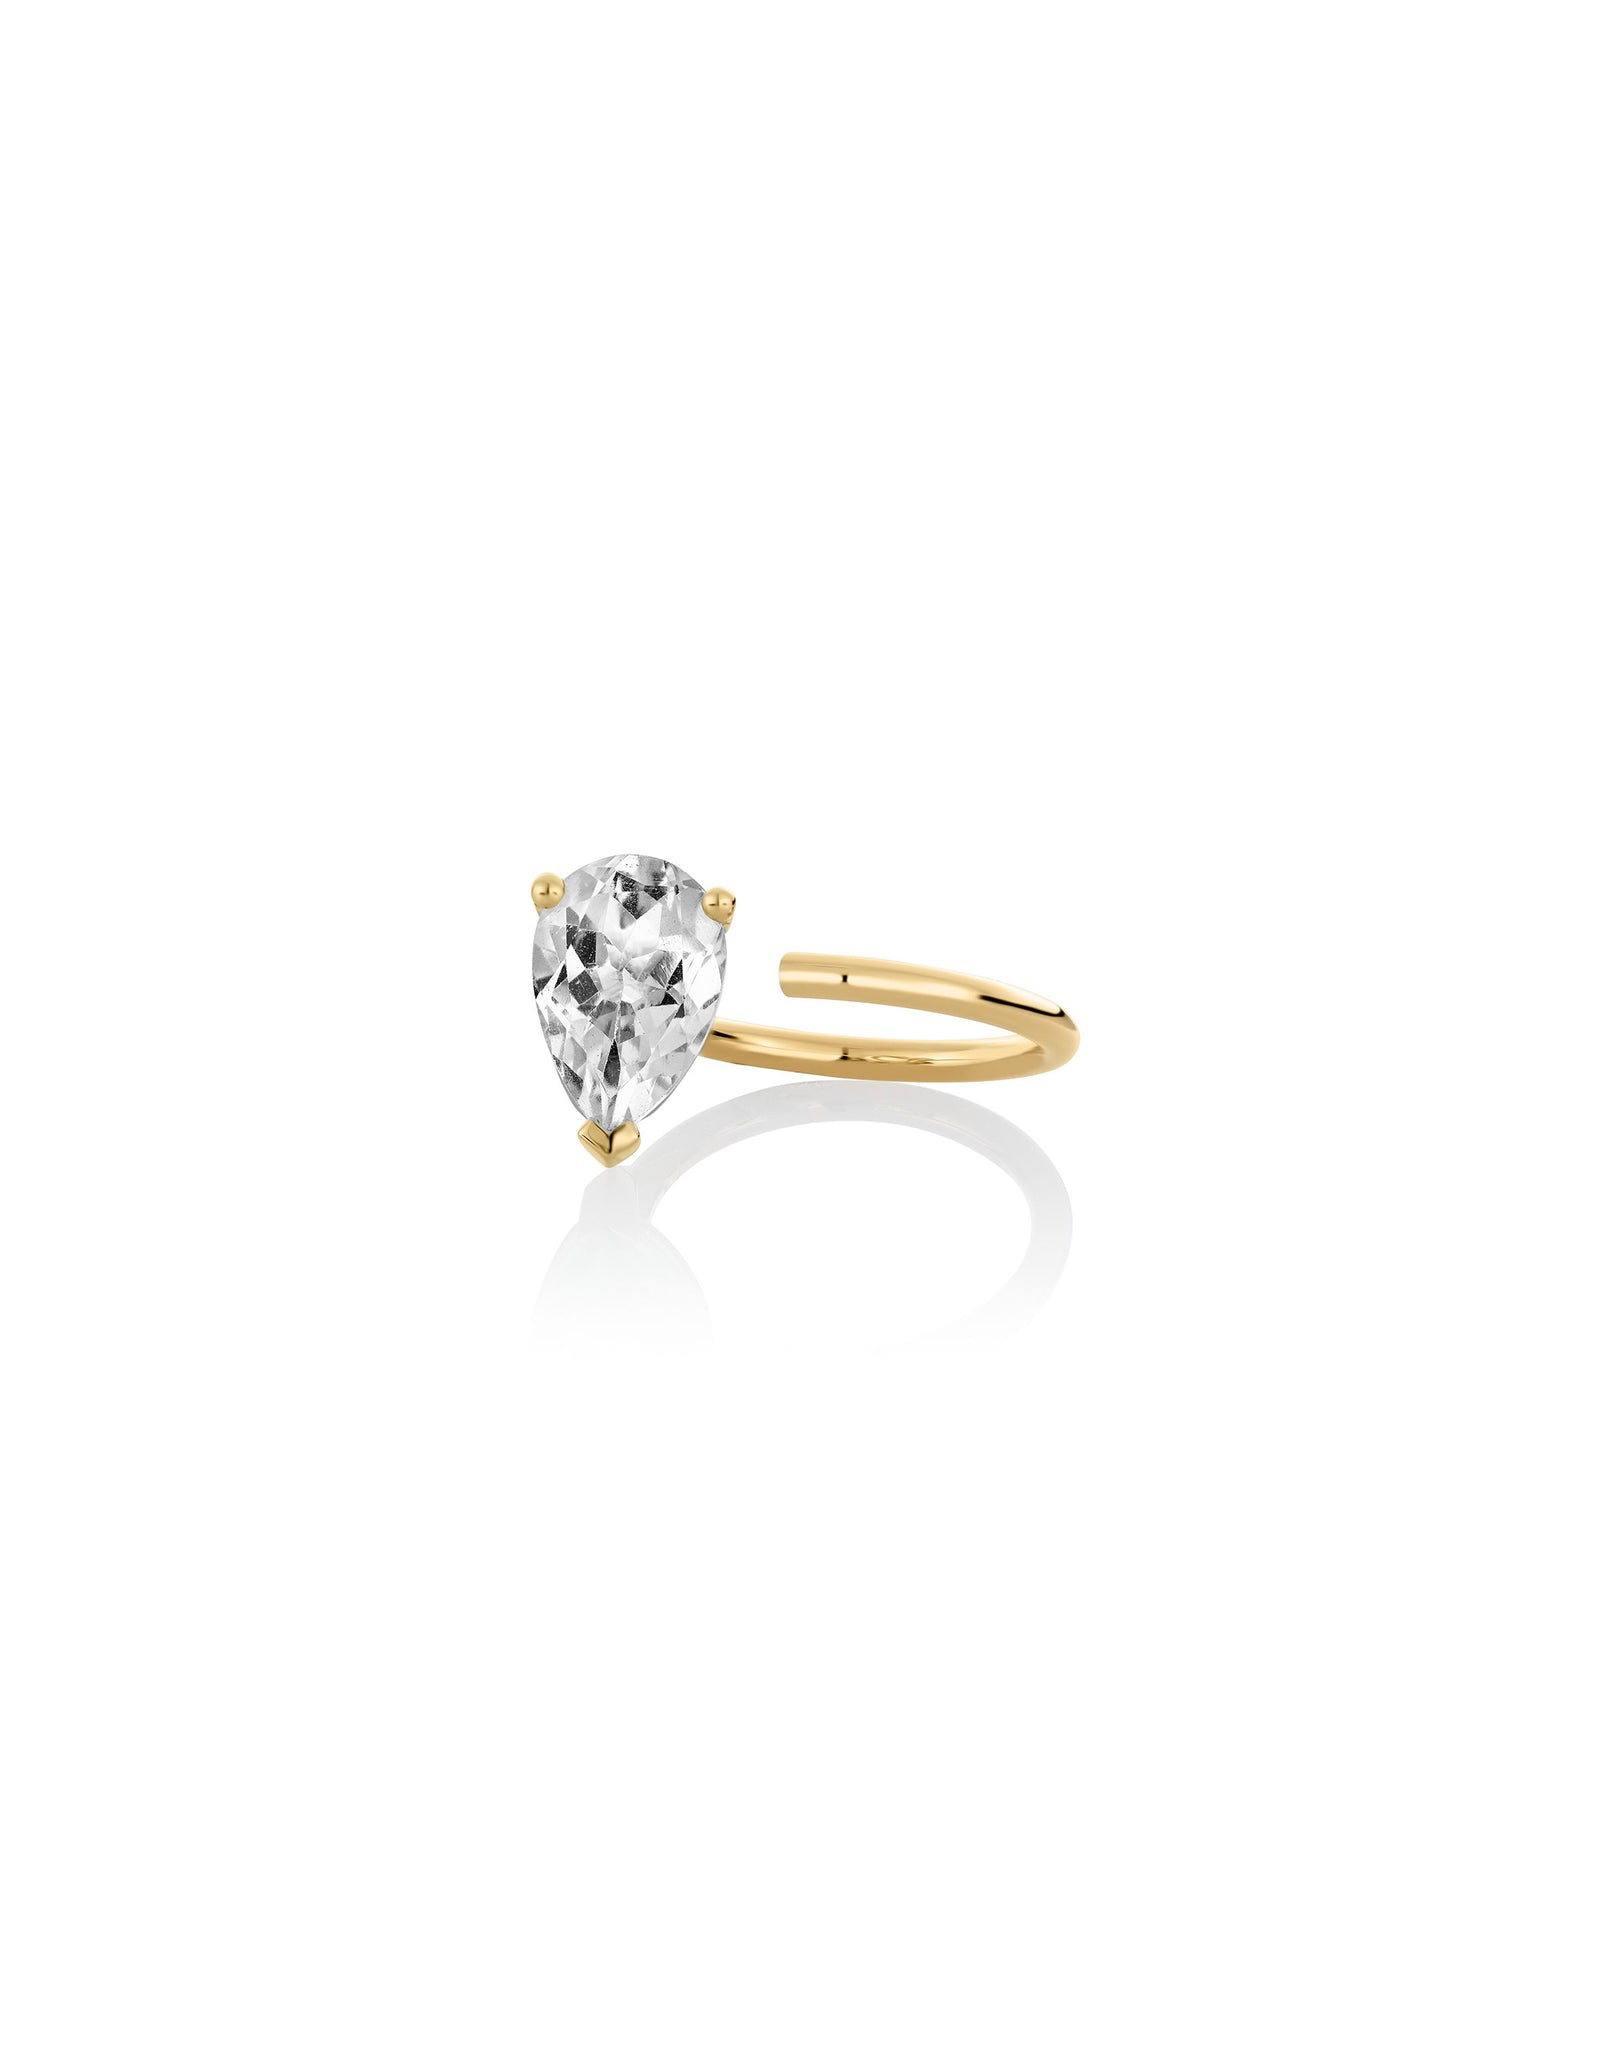 Nayestones Fine jeweelry Bloom ring in white topaz : an open ring with a trilliong shaped stone at the edge